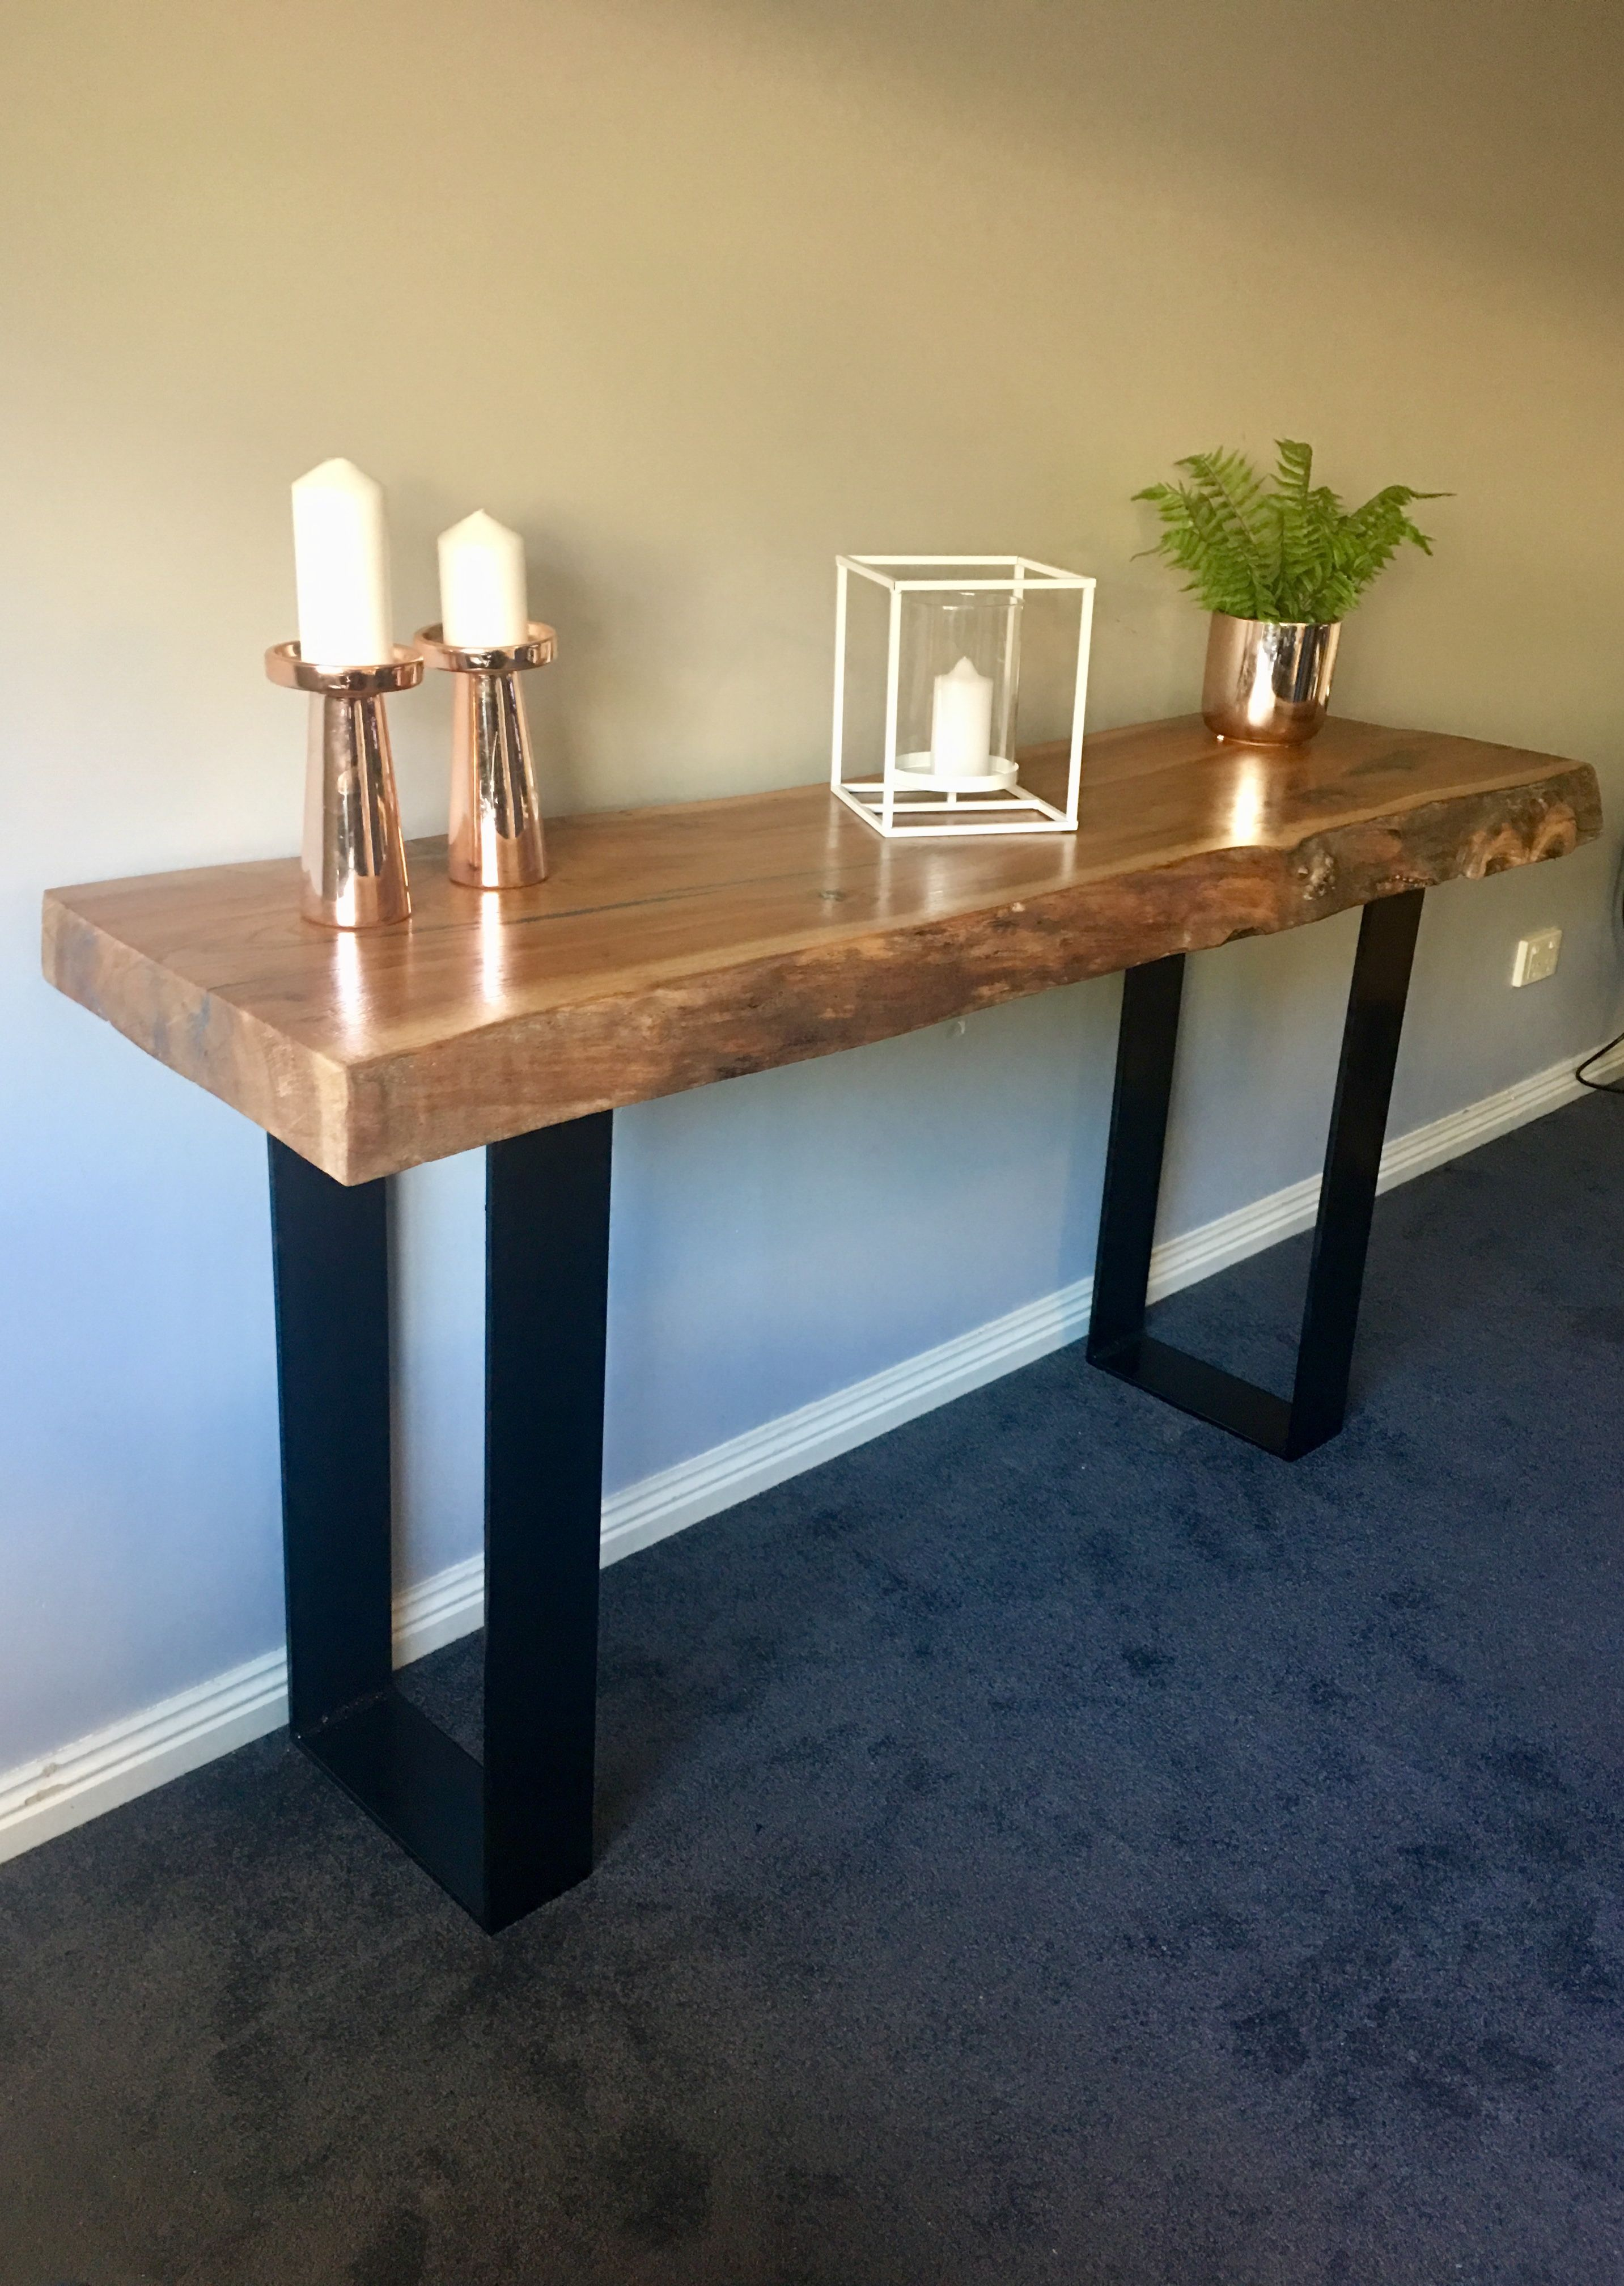 Elm Slab Hall Console With Black Flat Bar Metal Legs Made By Www Recycledtimberfurnitureoz Com Dinning Table Rustic Hall Table Rustic Bar Stools